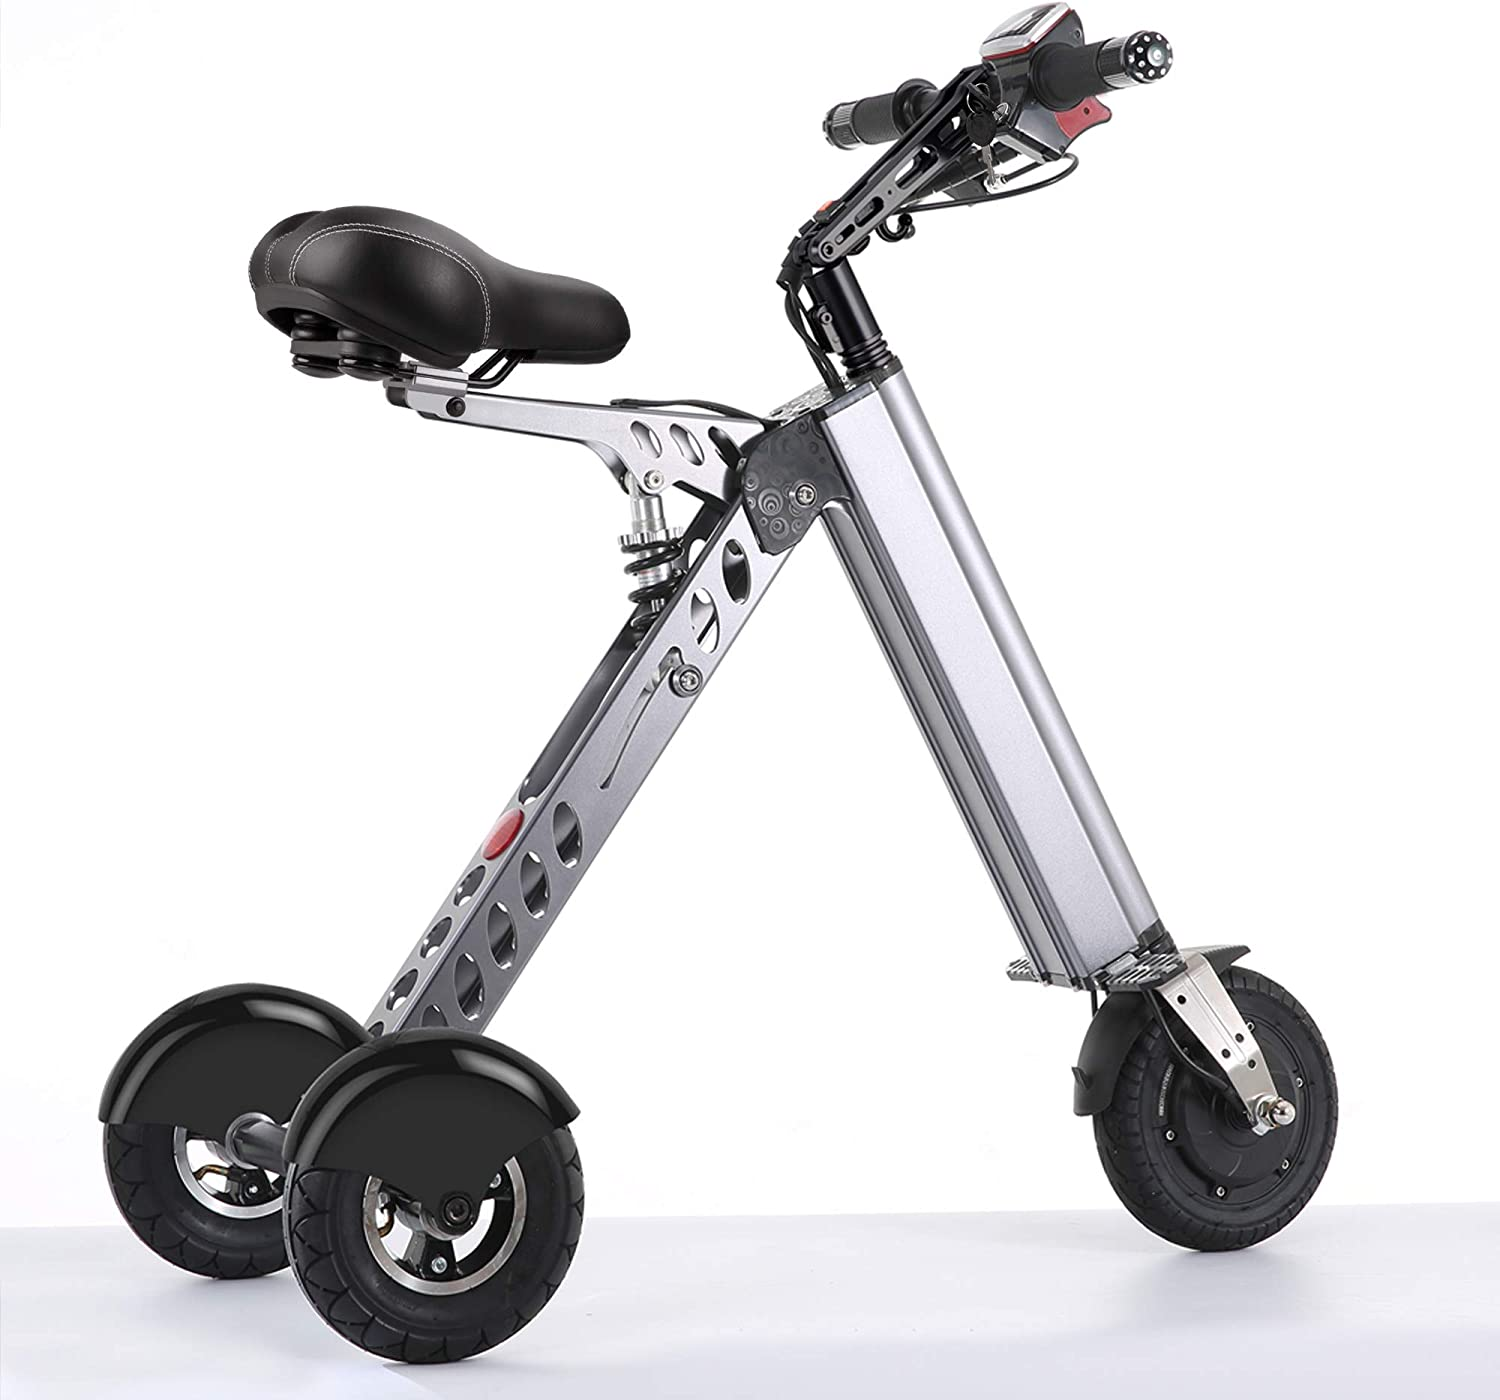 TopMate ES30 Electric Scooter Mini Foldable Tricycle Weight 14KG with 3 Gears Speed Limit 6-12-20KM H Full Charge 30KM Range Especially Suitable for People Need Mobility Assistance and Travel